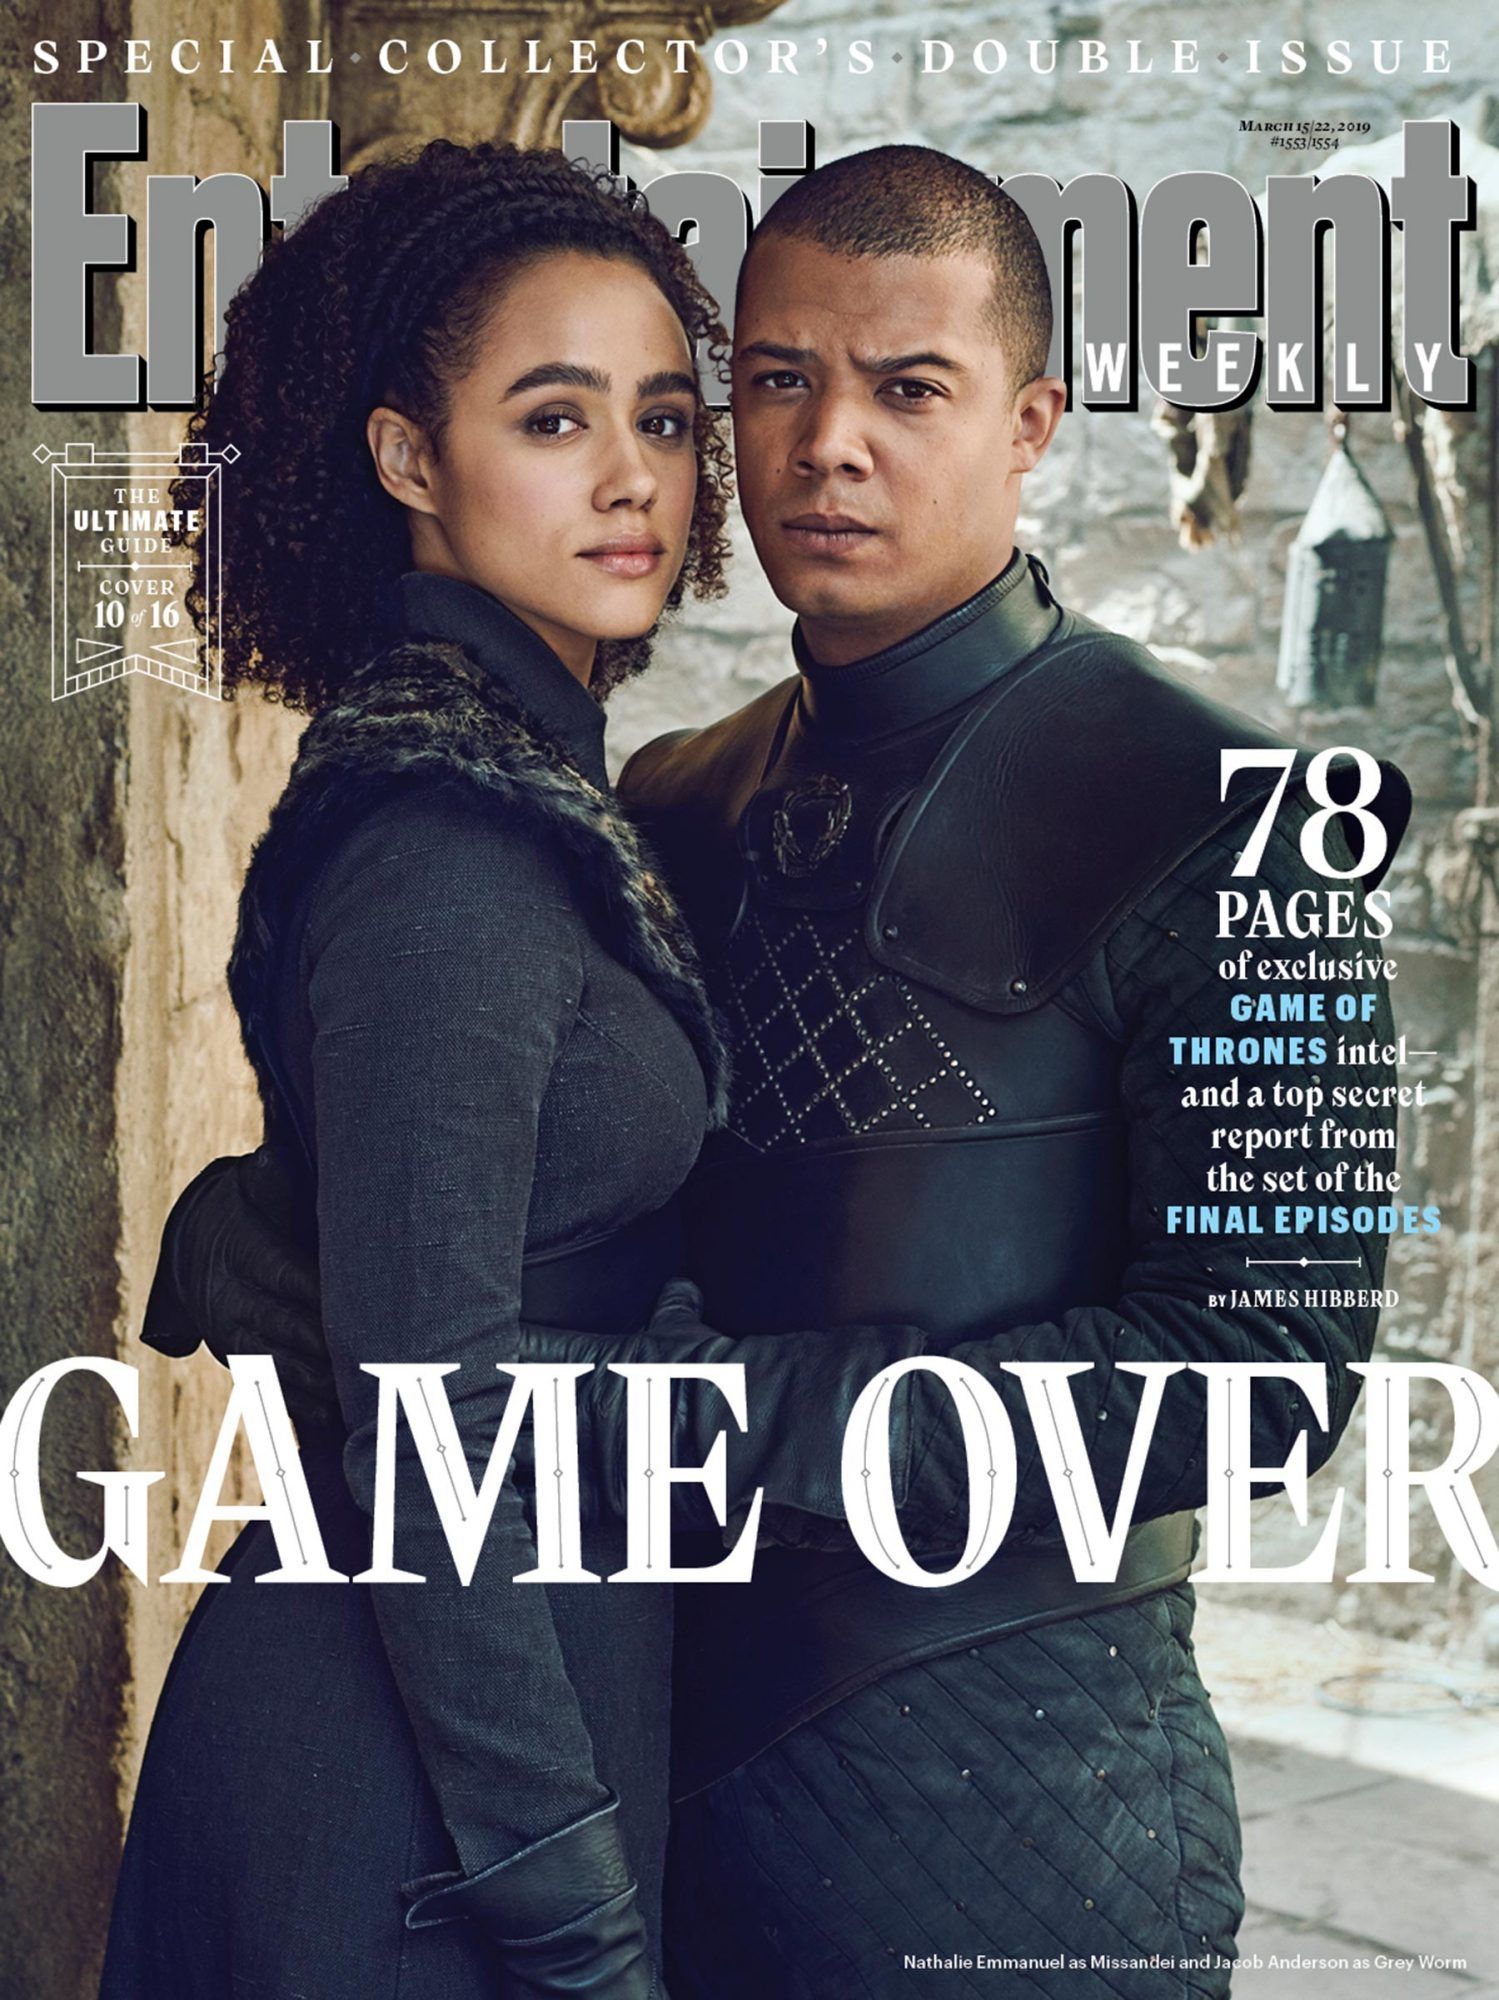 Nathalie Emmanuel and Jacob Anderson as Missandei and Grey Worm